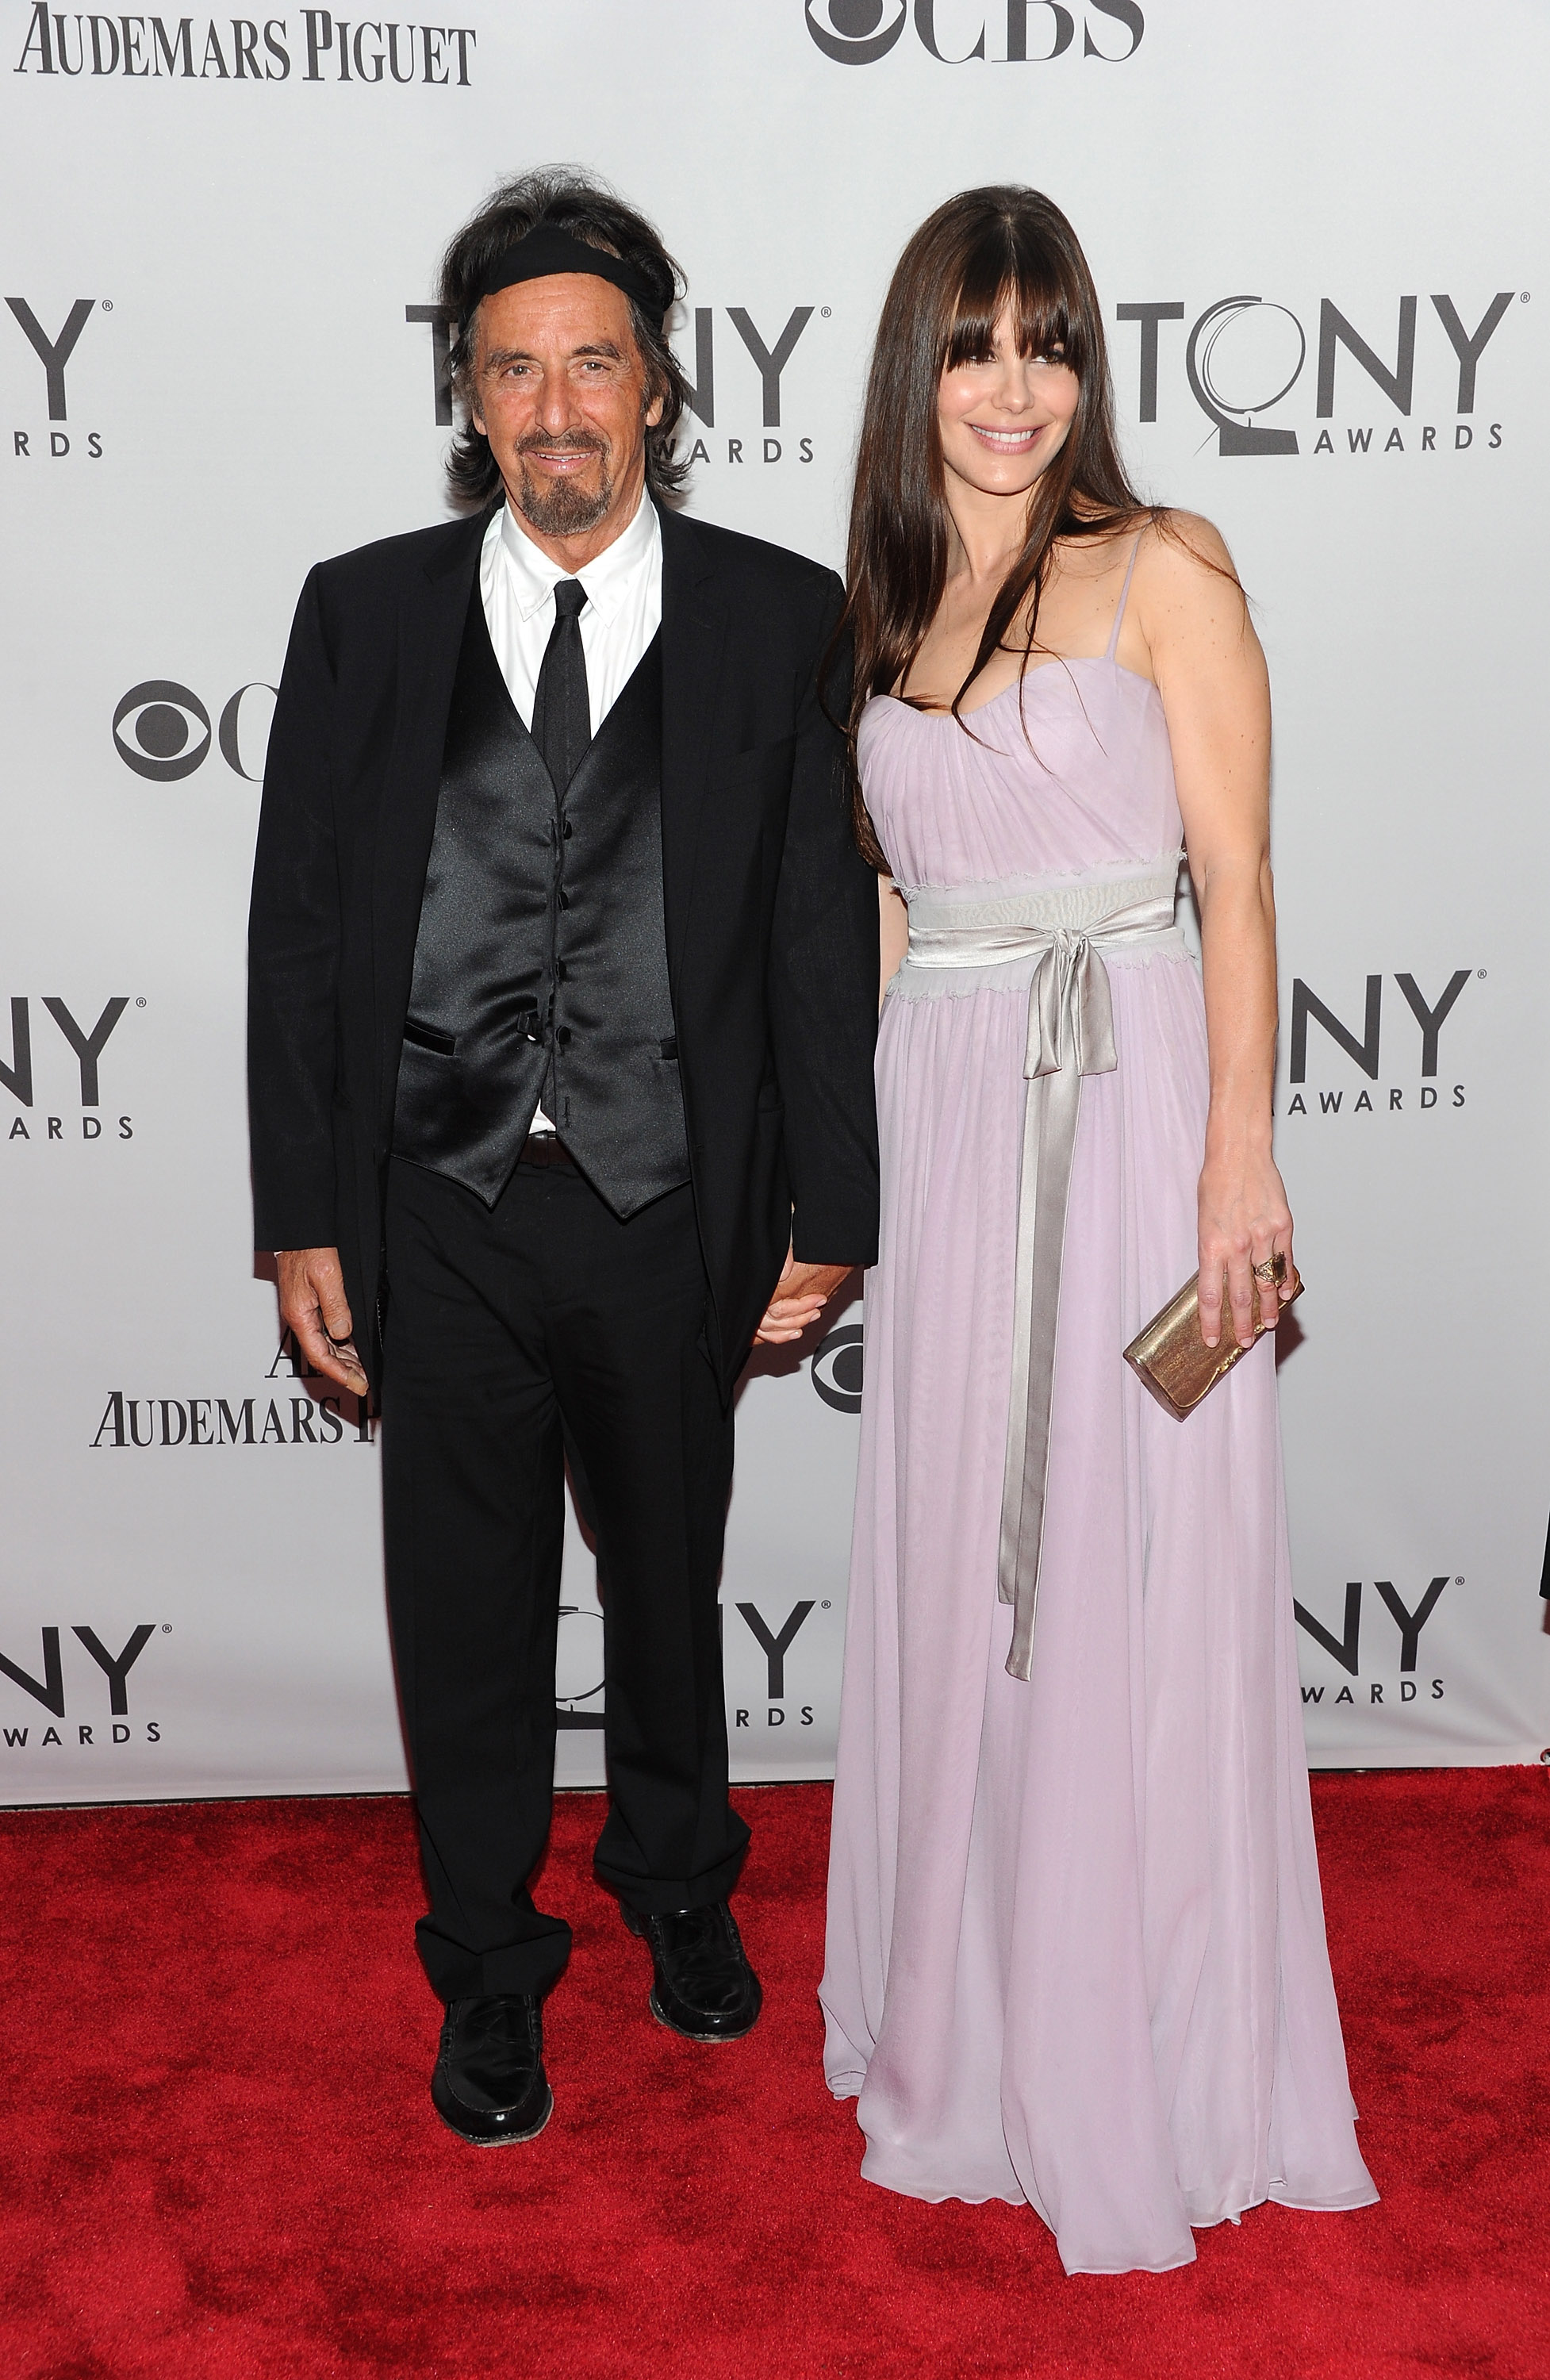 Al Pacino and Lucila Sola attend the 65th Annual Tony Awards at the Beacon Theatre on June 12, 2011 in New York City.